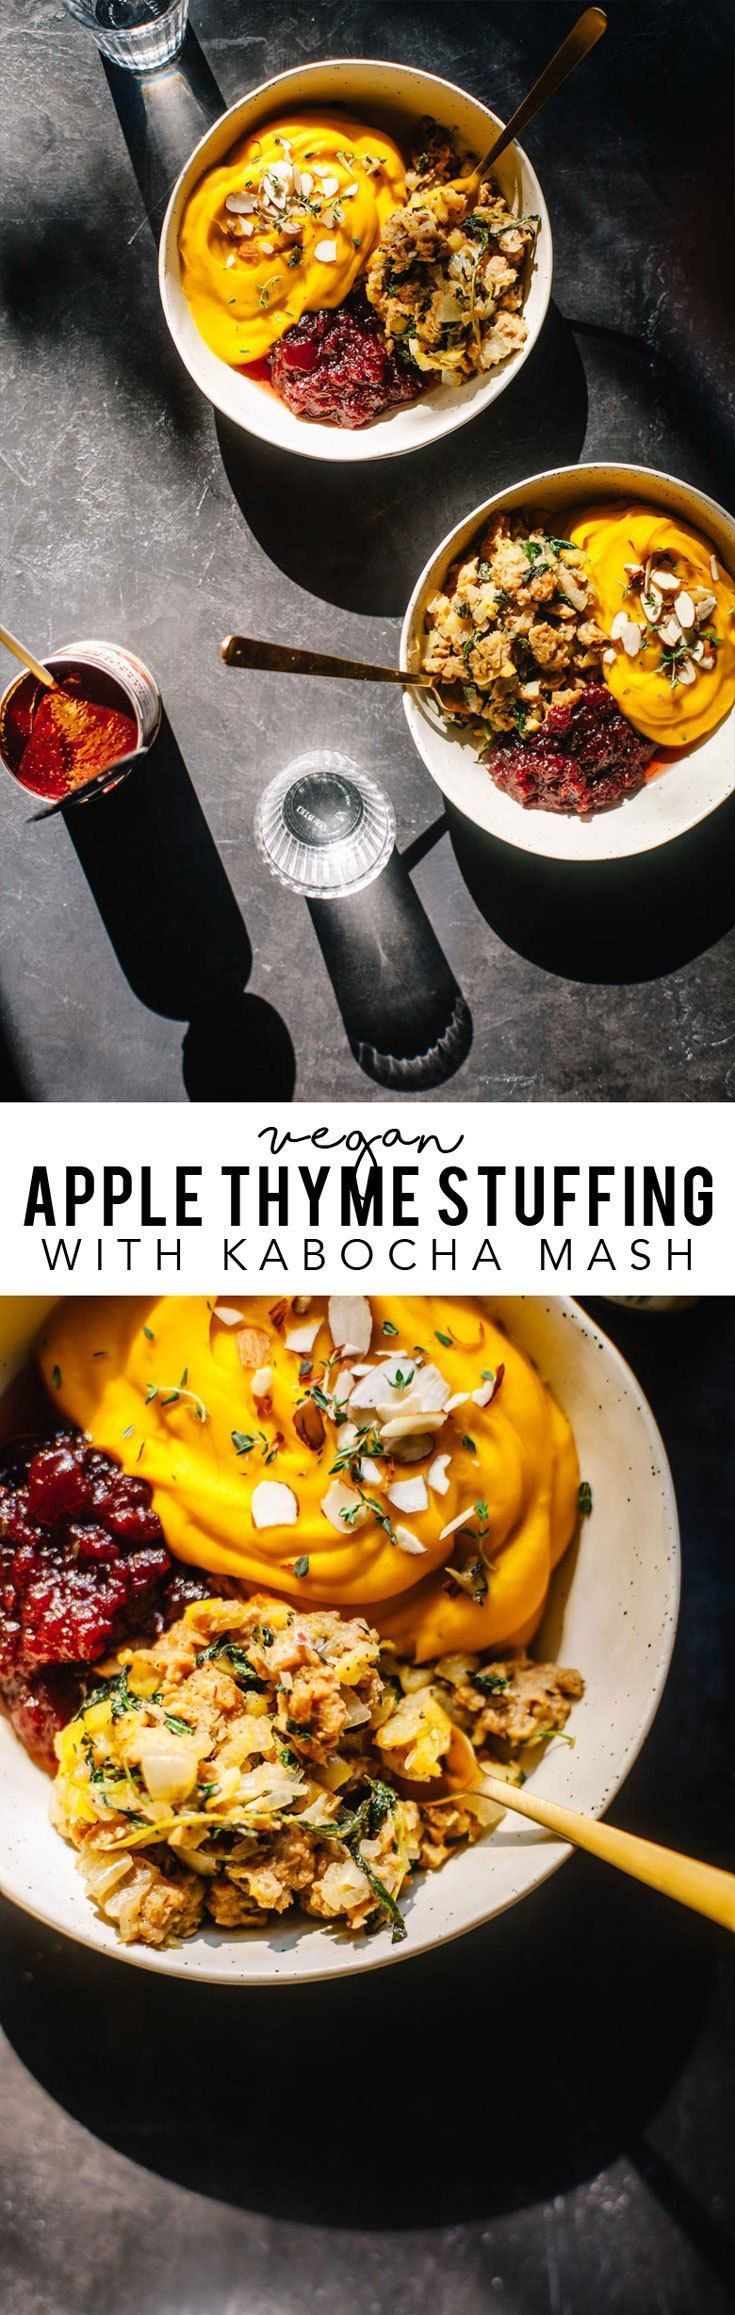 This vegan apple thyme sausage stuffing with kabocha squash mash is the perfect healthy Thanksgiving alternative to serve this year! #vegan #Thanksgiving #healthy | Brewing Happiness